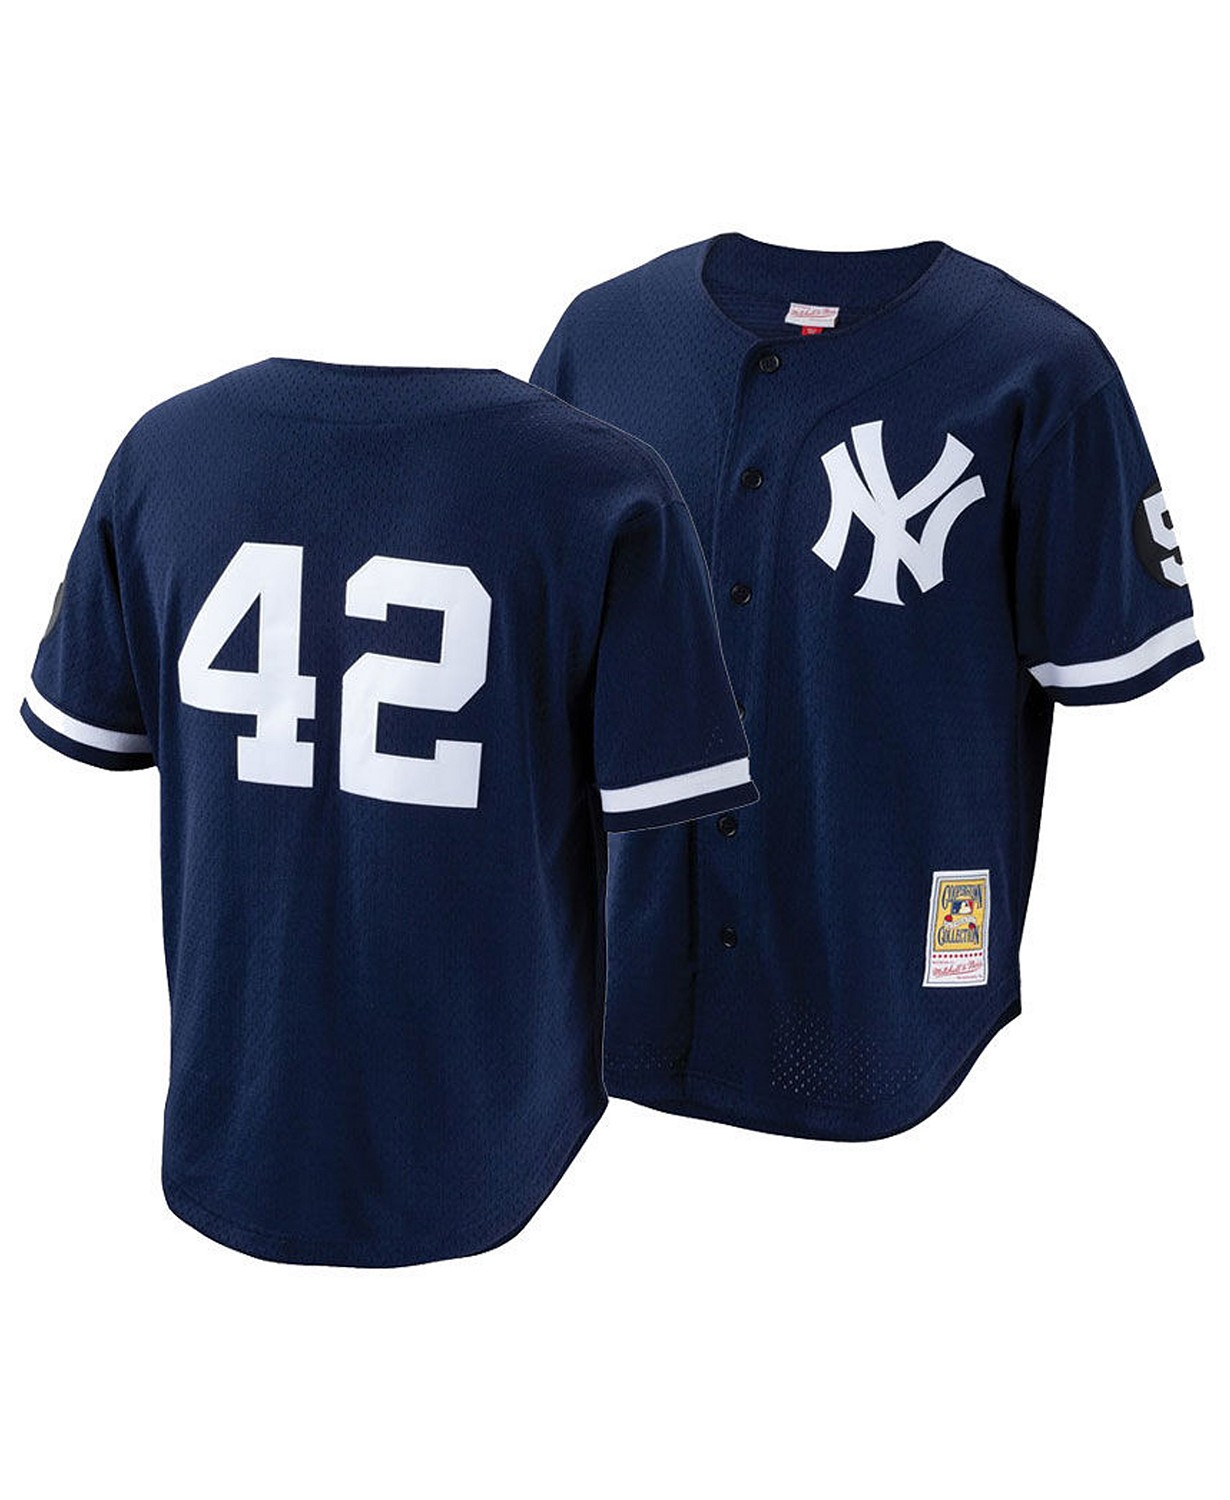 "Mariano Rivera New York Yankees Hall of Fame /""Unanimous/"" T-Shirt"